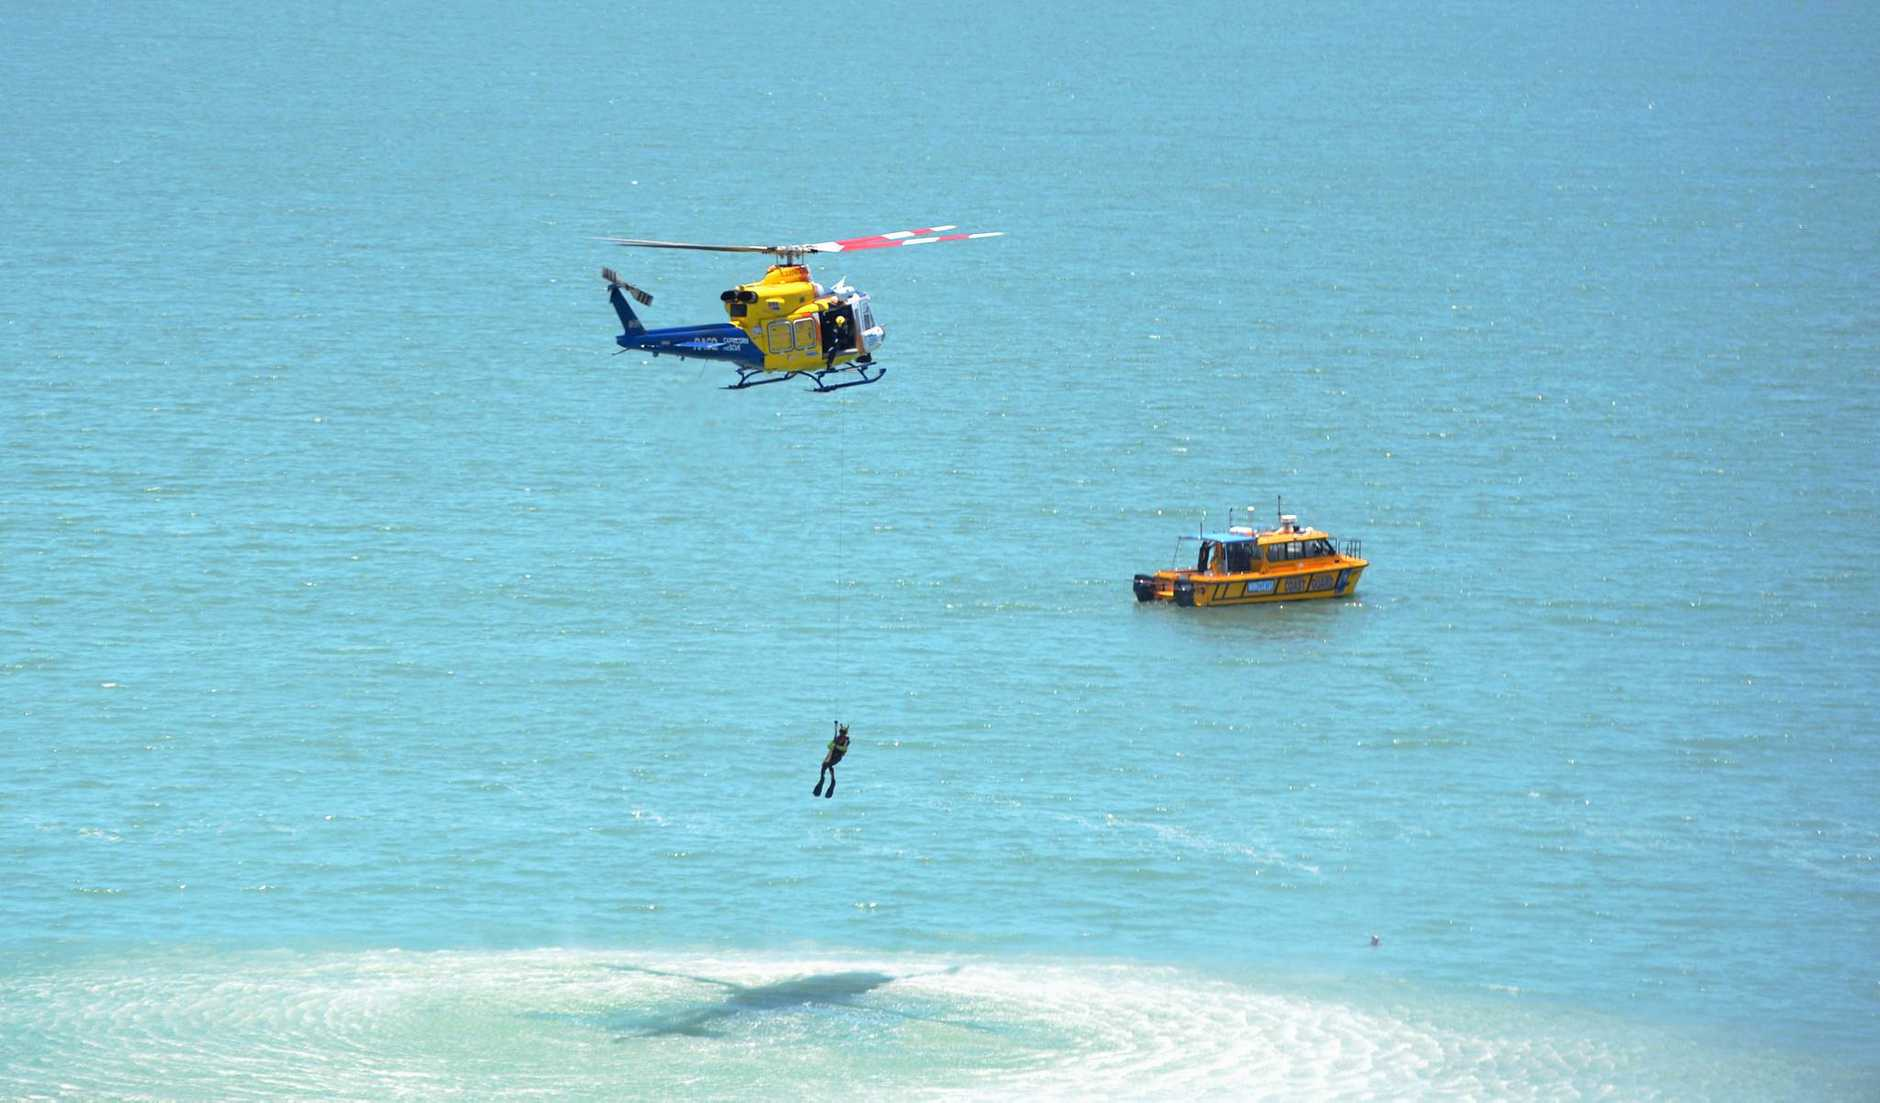 Spectators gathered at Wreck Point today to watch in awe as the RACQ Capricorn Rescue helicopter trained with the Volunteer Coastguard.